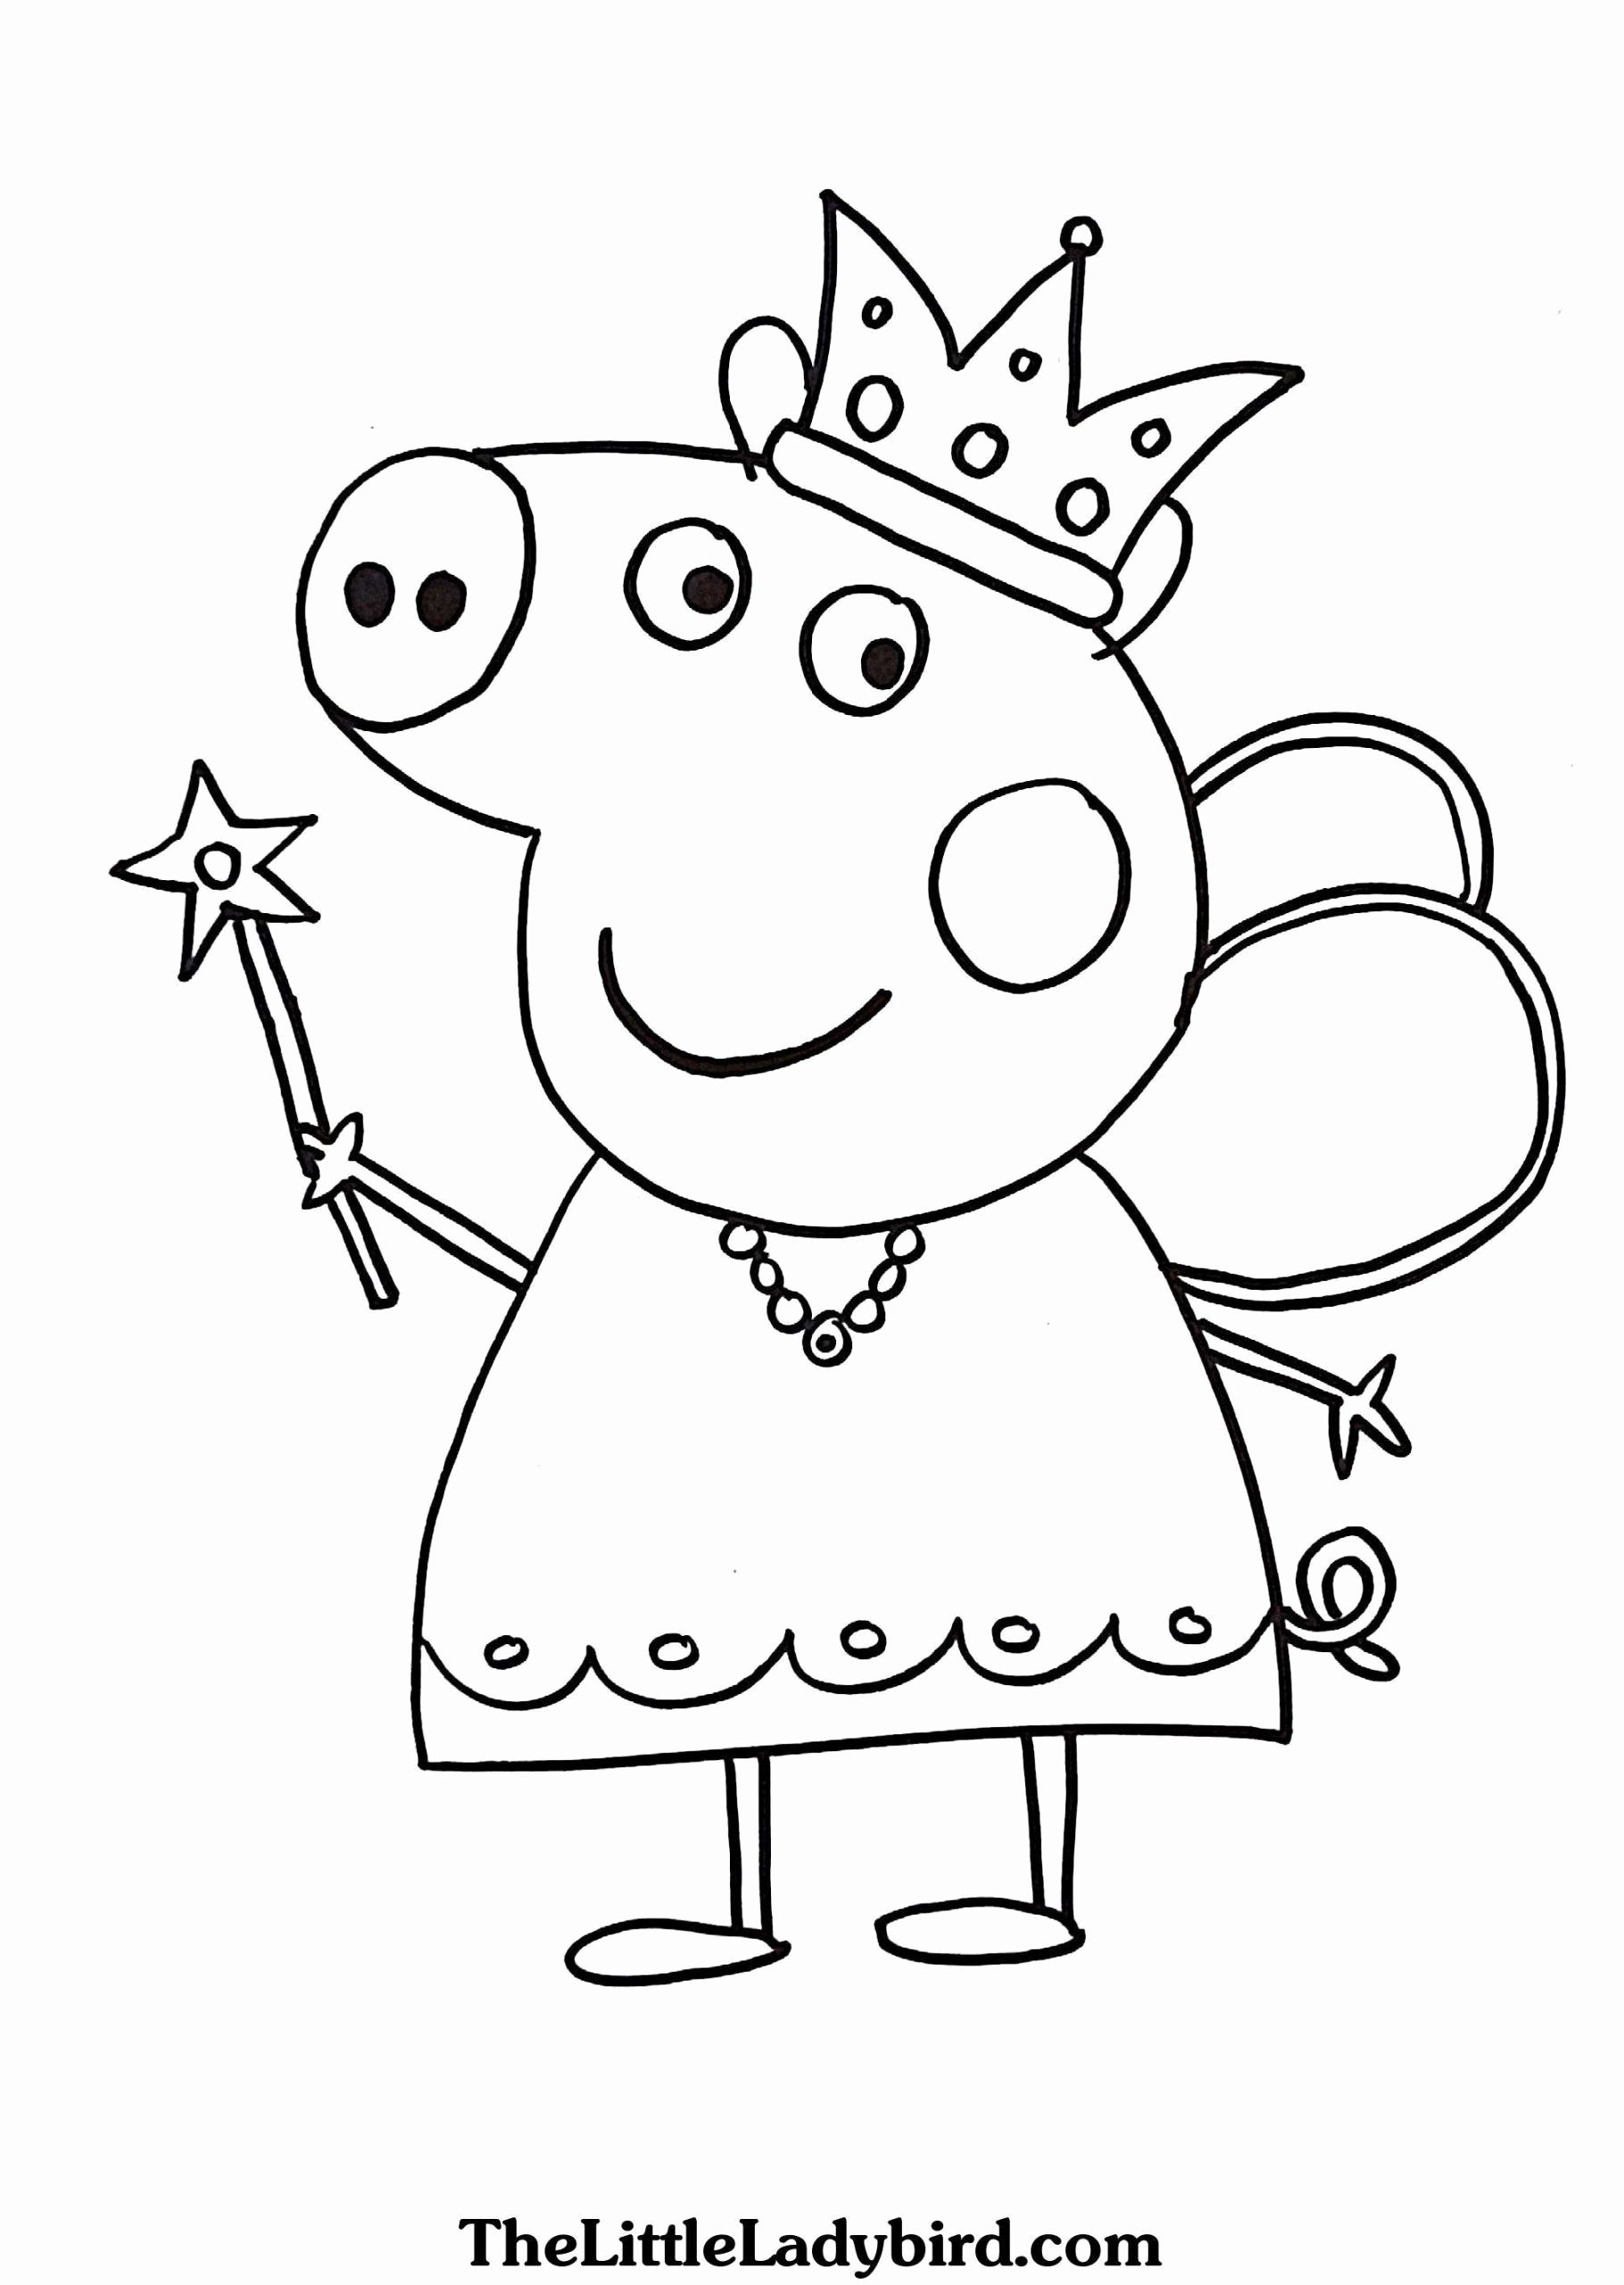 Free Coloring Worksheets for Preschoolers New Mess Free Coloring for toddlers Printable Download